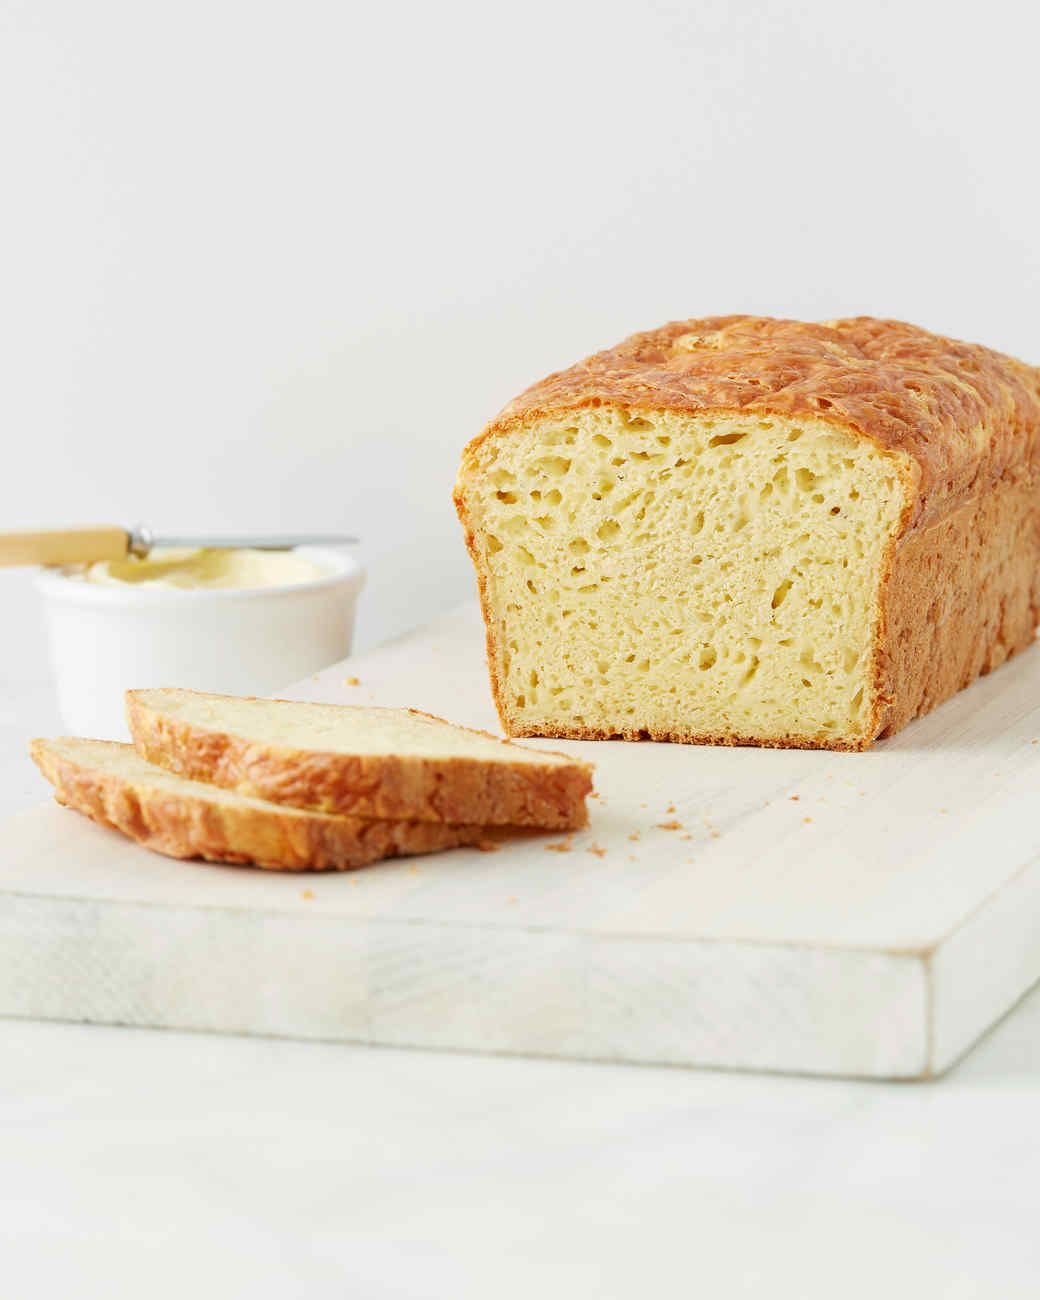 Buttermilk Gives This Cheesy Quick Bread A Subtle Tang And Keeps It Nice And Moist Serve With Plenty Of Butter Martha Made This Recipe On Recipes Food Bread